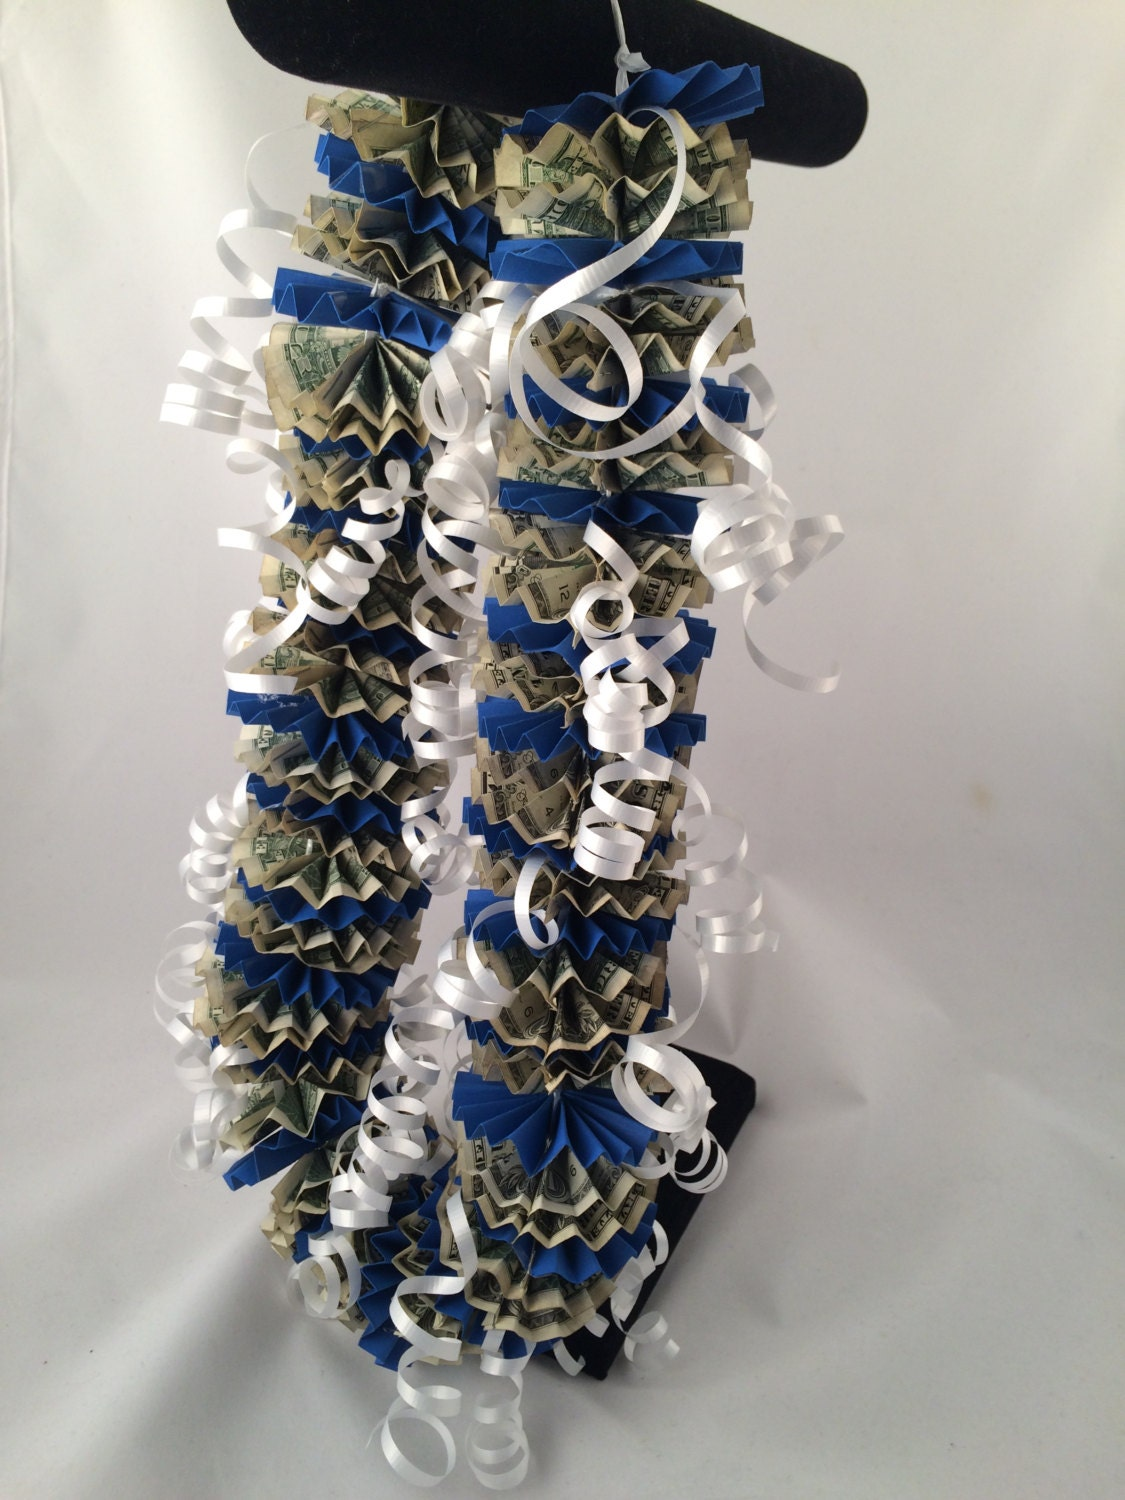 Lei Can Be Made With Construction Paper Yarn Solid: 50 Dollar Money Lei Royal Blue Leis Cash Leis Dollar